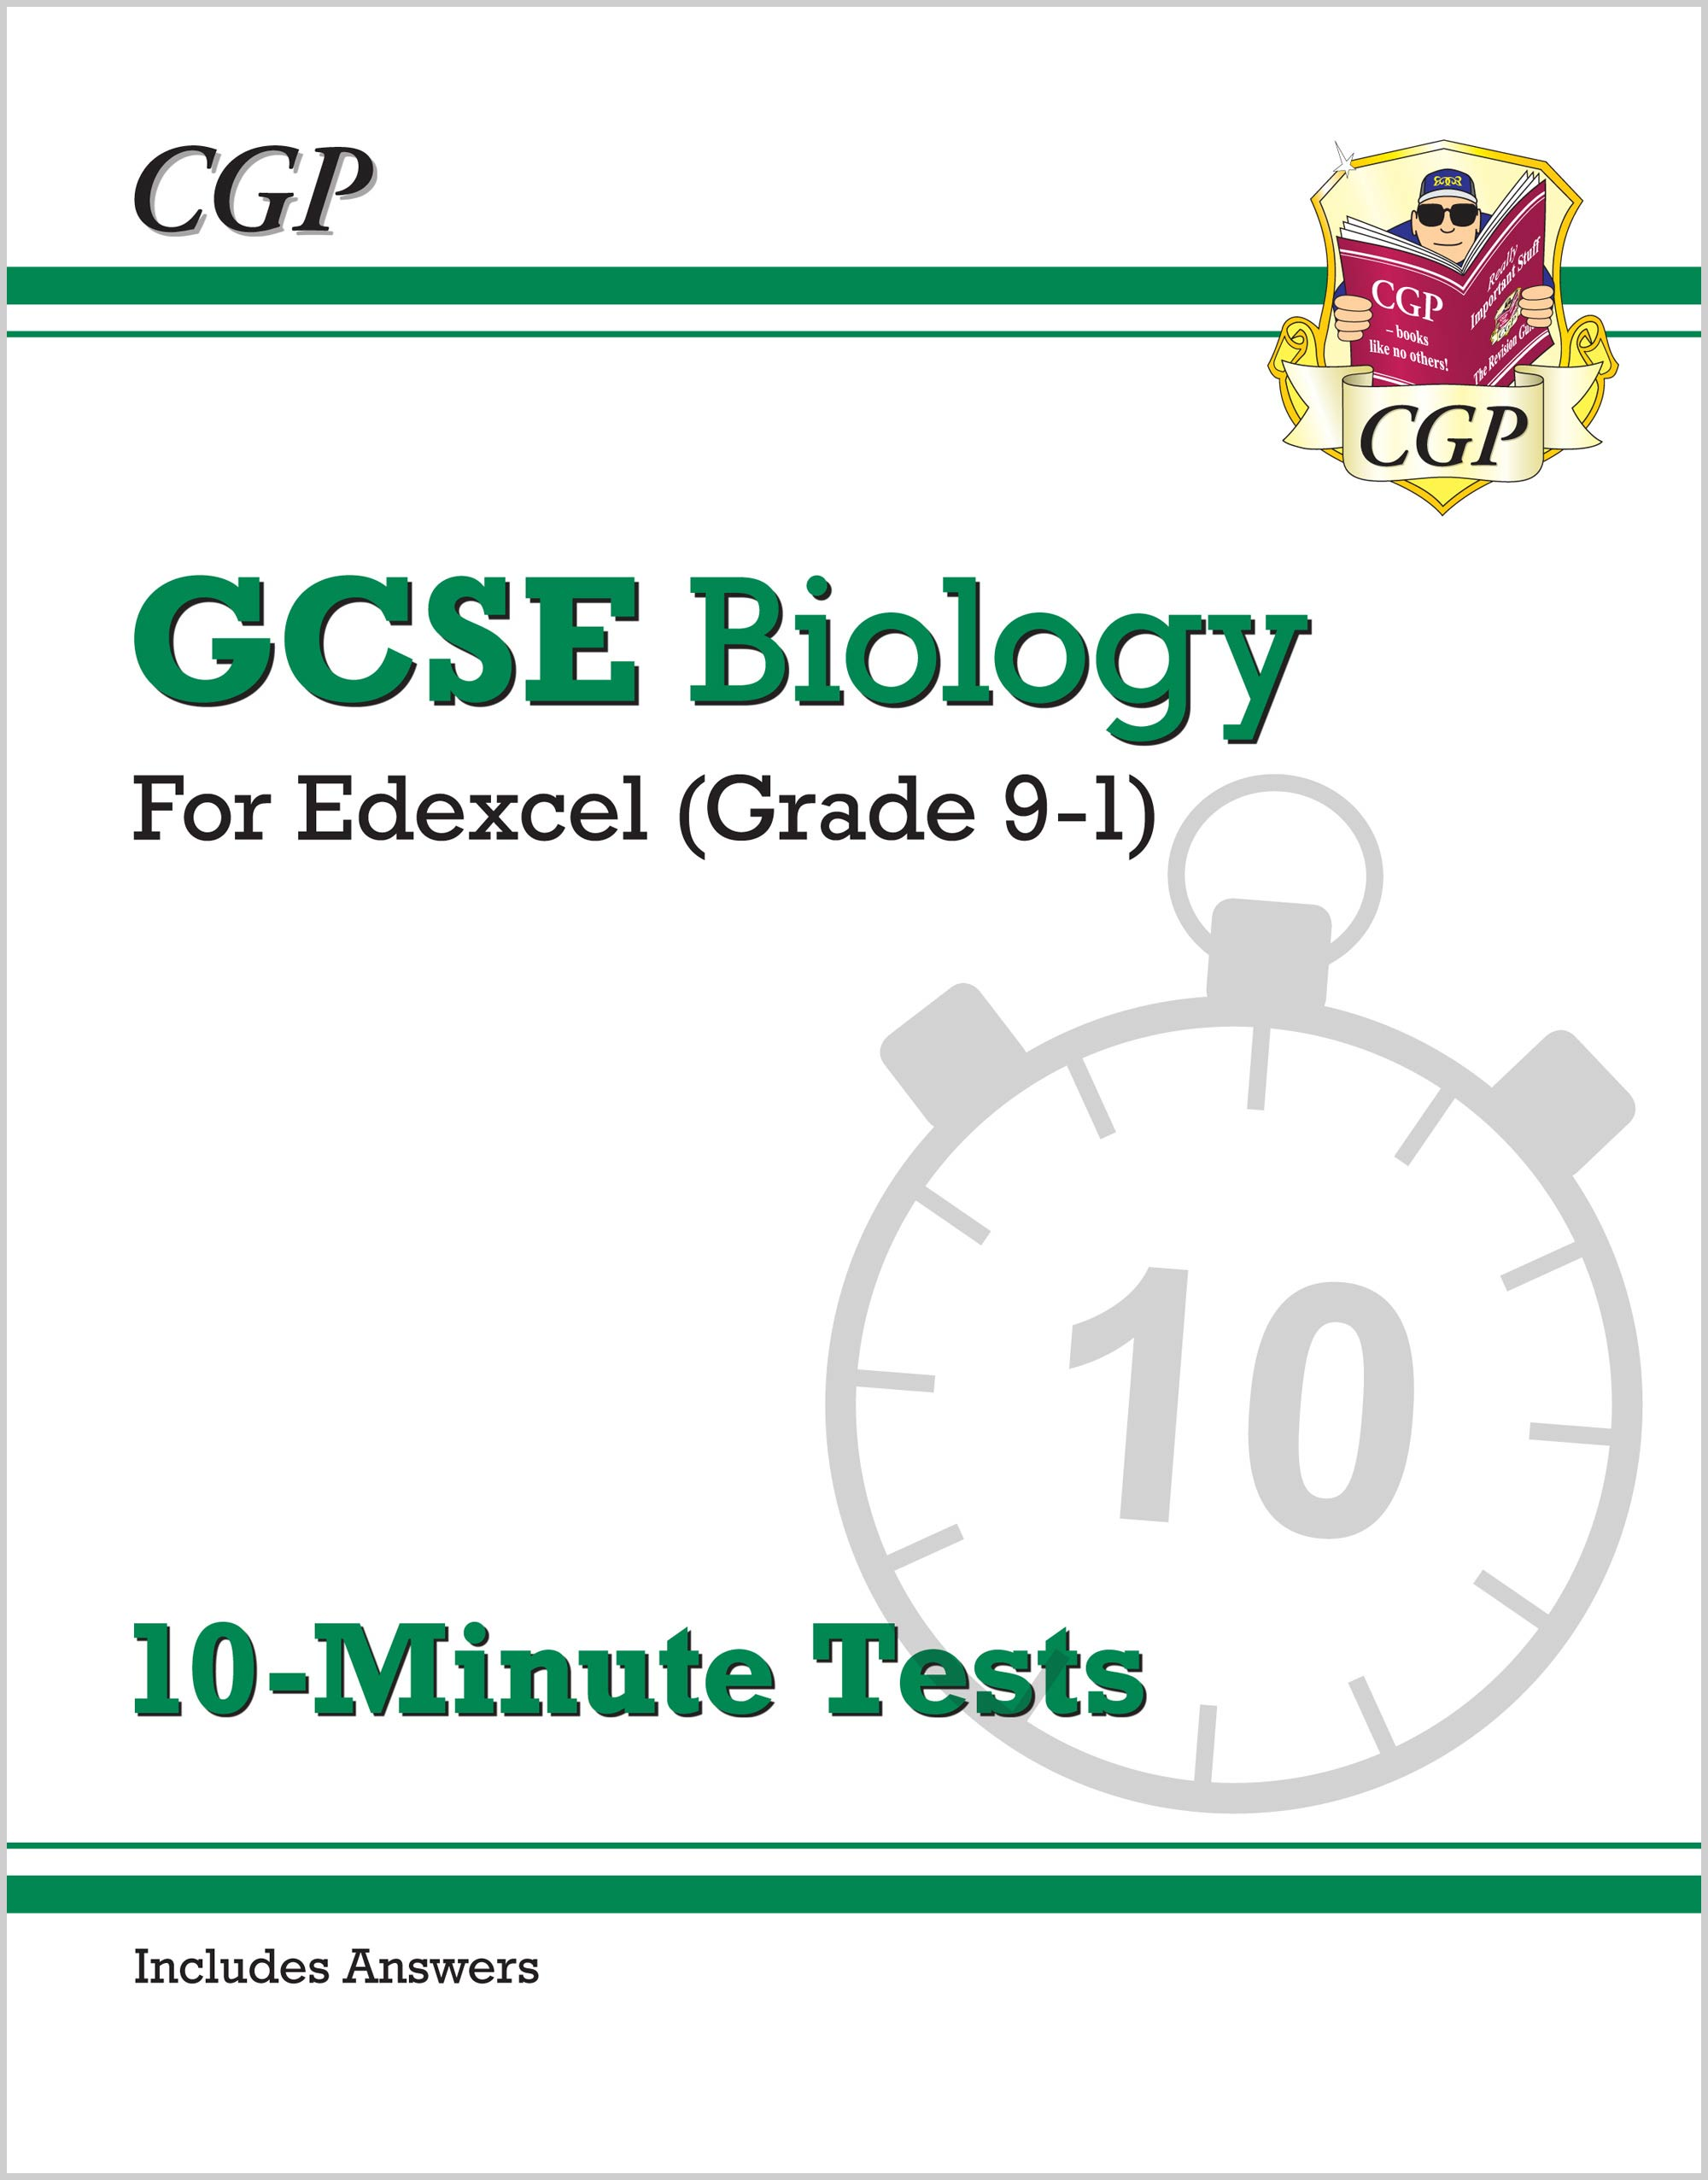 BEXP41 - New Grade 9-1 GCSE Biology: Edexcel 10-Minute Tests (with answers)